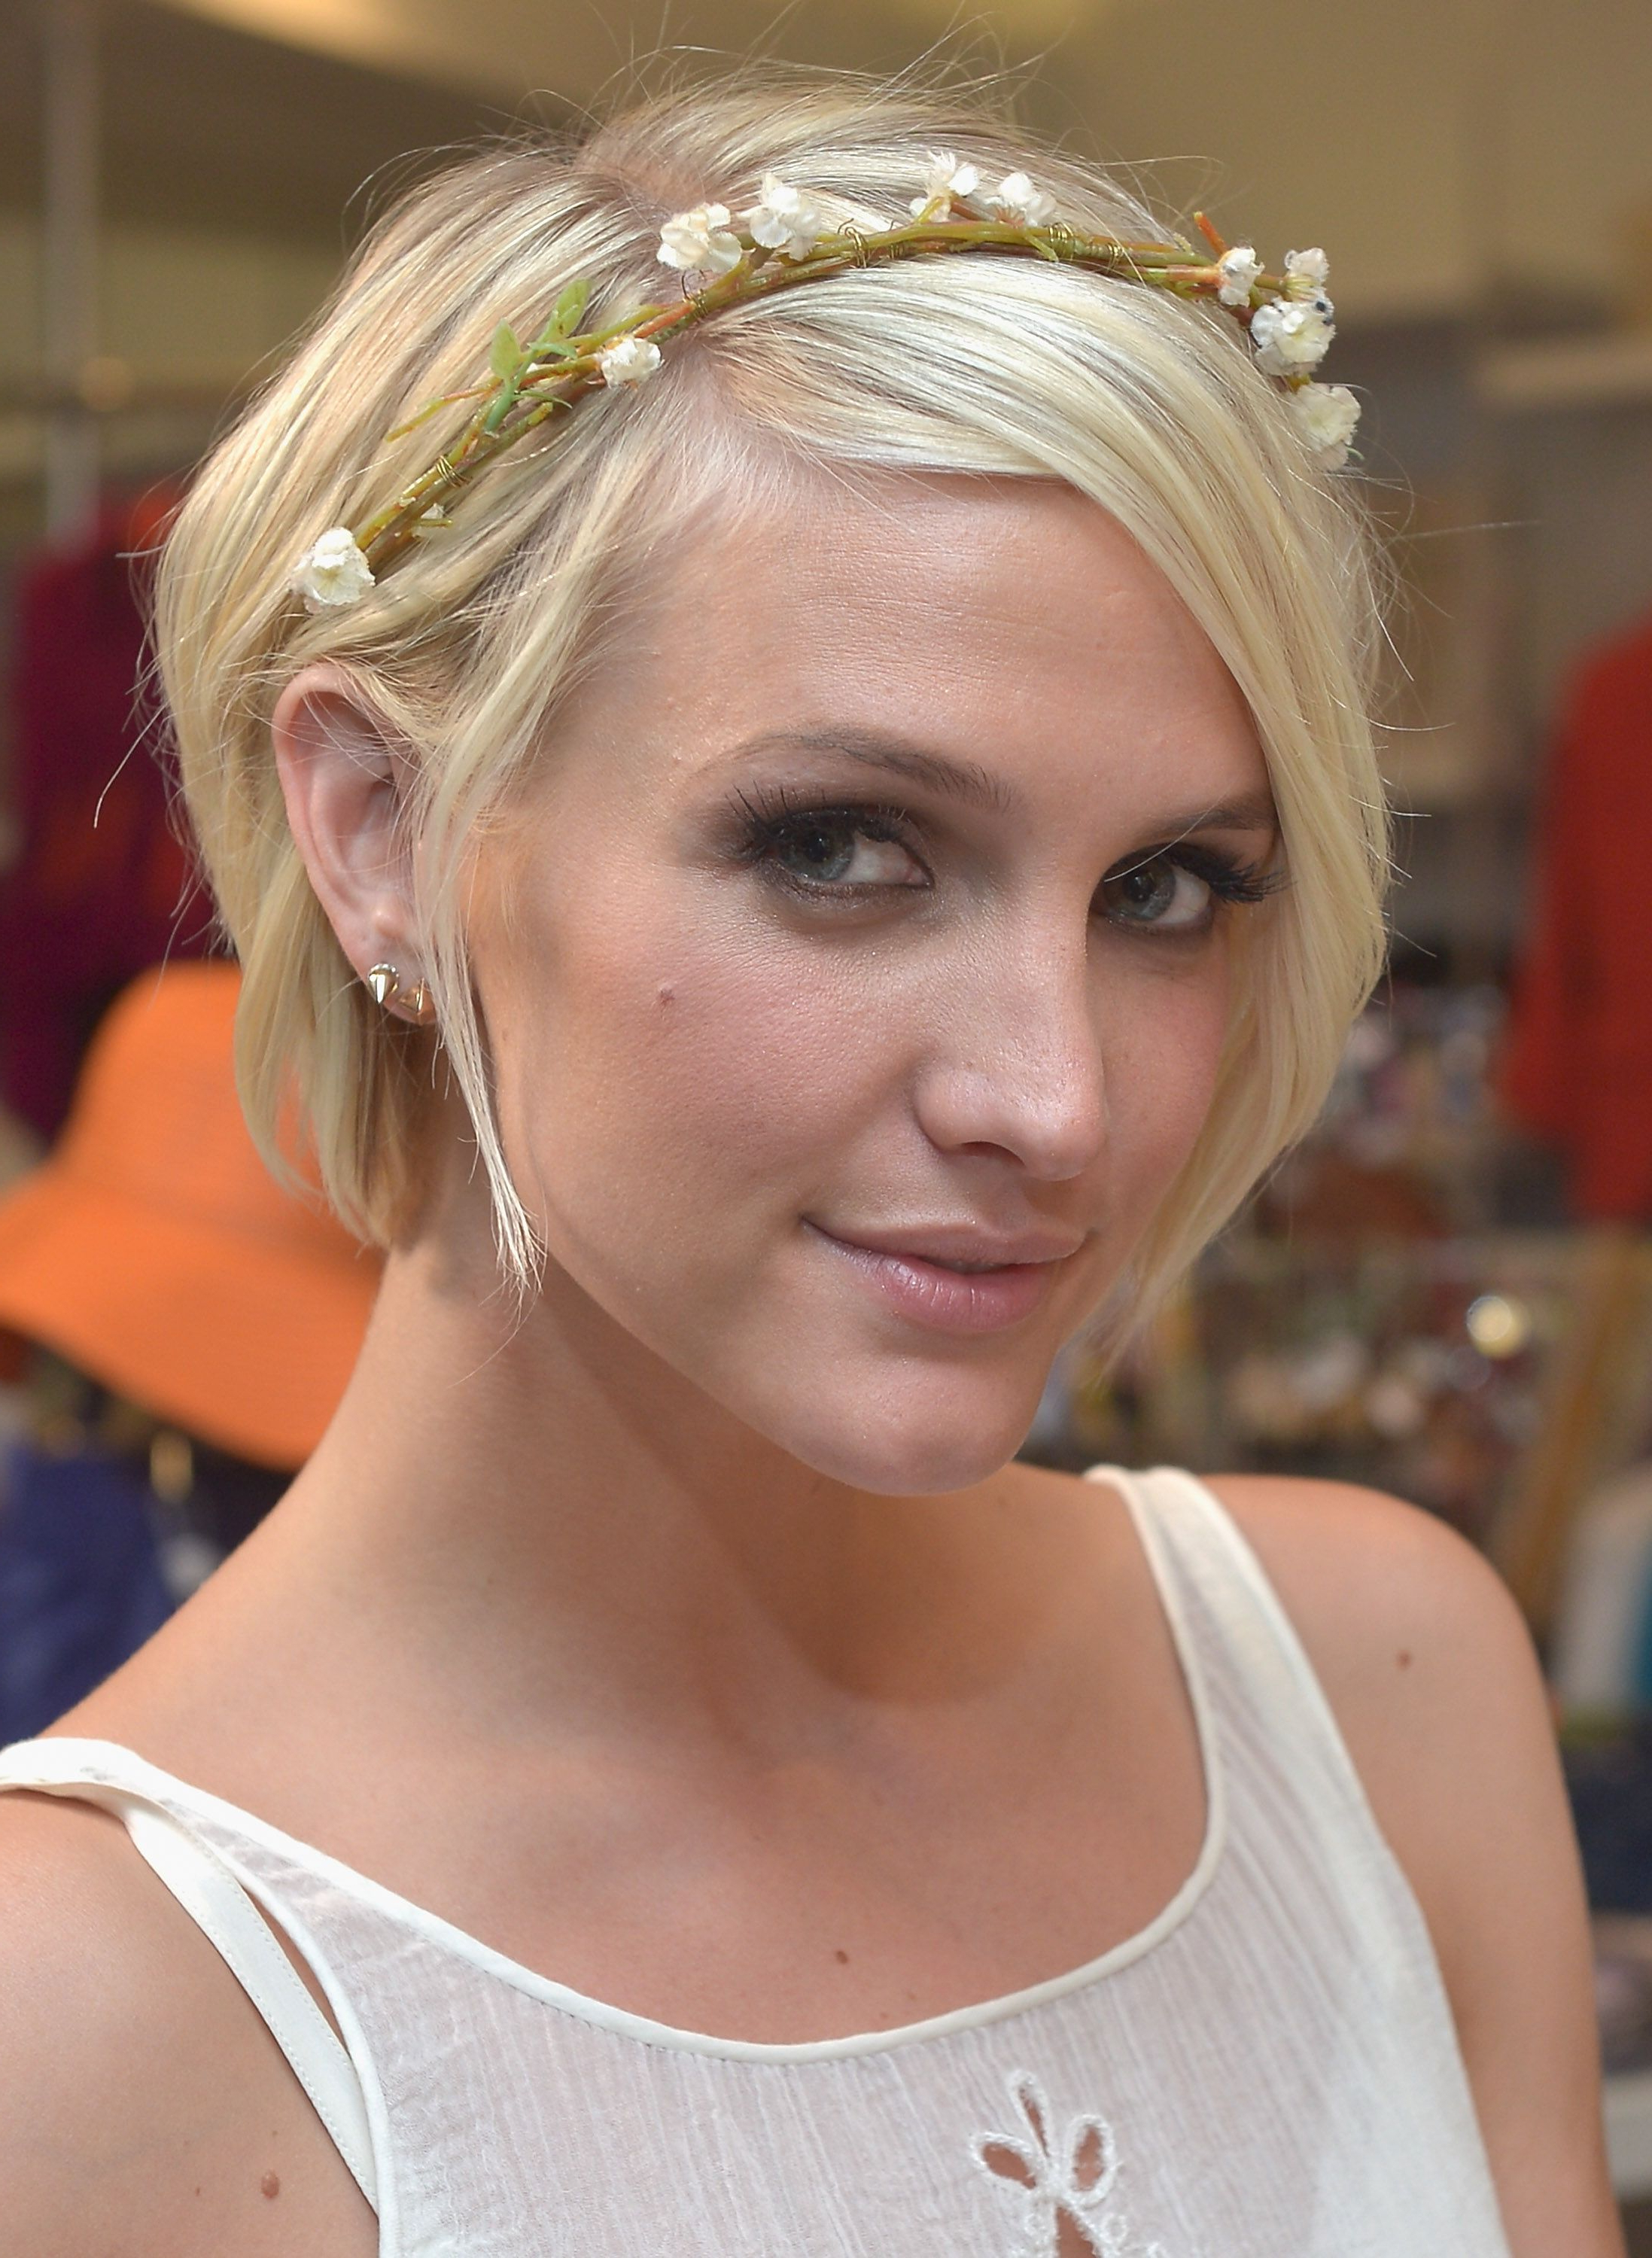 Look Hippie Chic Party – Pesquisa Google | Accesory | Pinterest With Regard To Hippie Short Hairstyles (View 5 of 25)